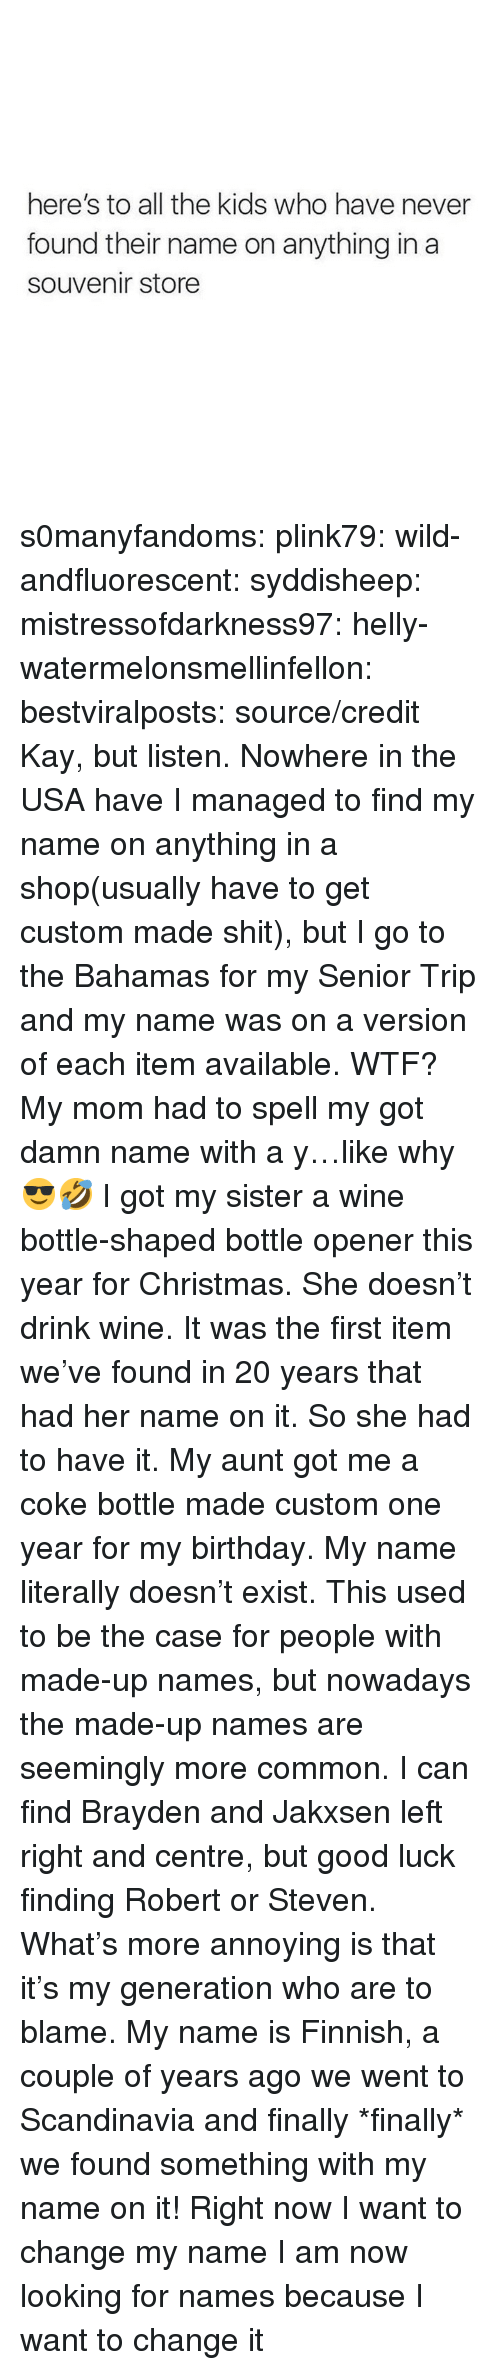 Opener: here's to all the kids who have never  found their name on anything in a  souvenir store s0manyfandoms: plink79:  wild-andfluorescent:  syddisheep:  mistressofdarkness97:  helly-watermelonsmellinfellon:  bestviralposts: source/credit Kay, but listen. Nowhere in the USA have I managed to find my name on anything in a shop(usually have to get custom made shit), but I go to the Bahamas for my Senior Trip and my name was on a version of each item available. WTF?   My mom had to spell my got damn name with a y…like why 😎🤣   I got my sister a wine bottle-shaped bottle opener this year for Christmas. She doesn't drink wine. It was the first item we've found in 20 years that had her name on it. So she had to have it.    My aunt got me a coke bottle made custom one year for my birthday. My name literally doesn't exist.    This used to be the case for people with made-up names, but nowadays the made-up names are seemingly more common. I can find Brayden and Jakxsen left right and centre, but good luck finding Robert or Steven. What's more annoying is that it's my generation who are to blame.  My name is Finnish, a couple of years ago we went to Scandinavia and finally *finally* we found something with my name on it!  Right now I want to change my name I am now looking for names because I want to change it